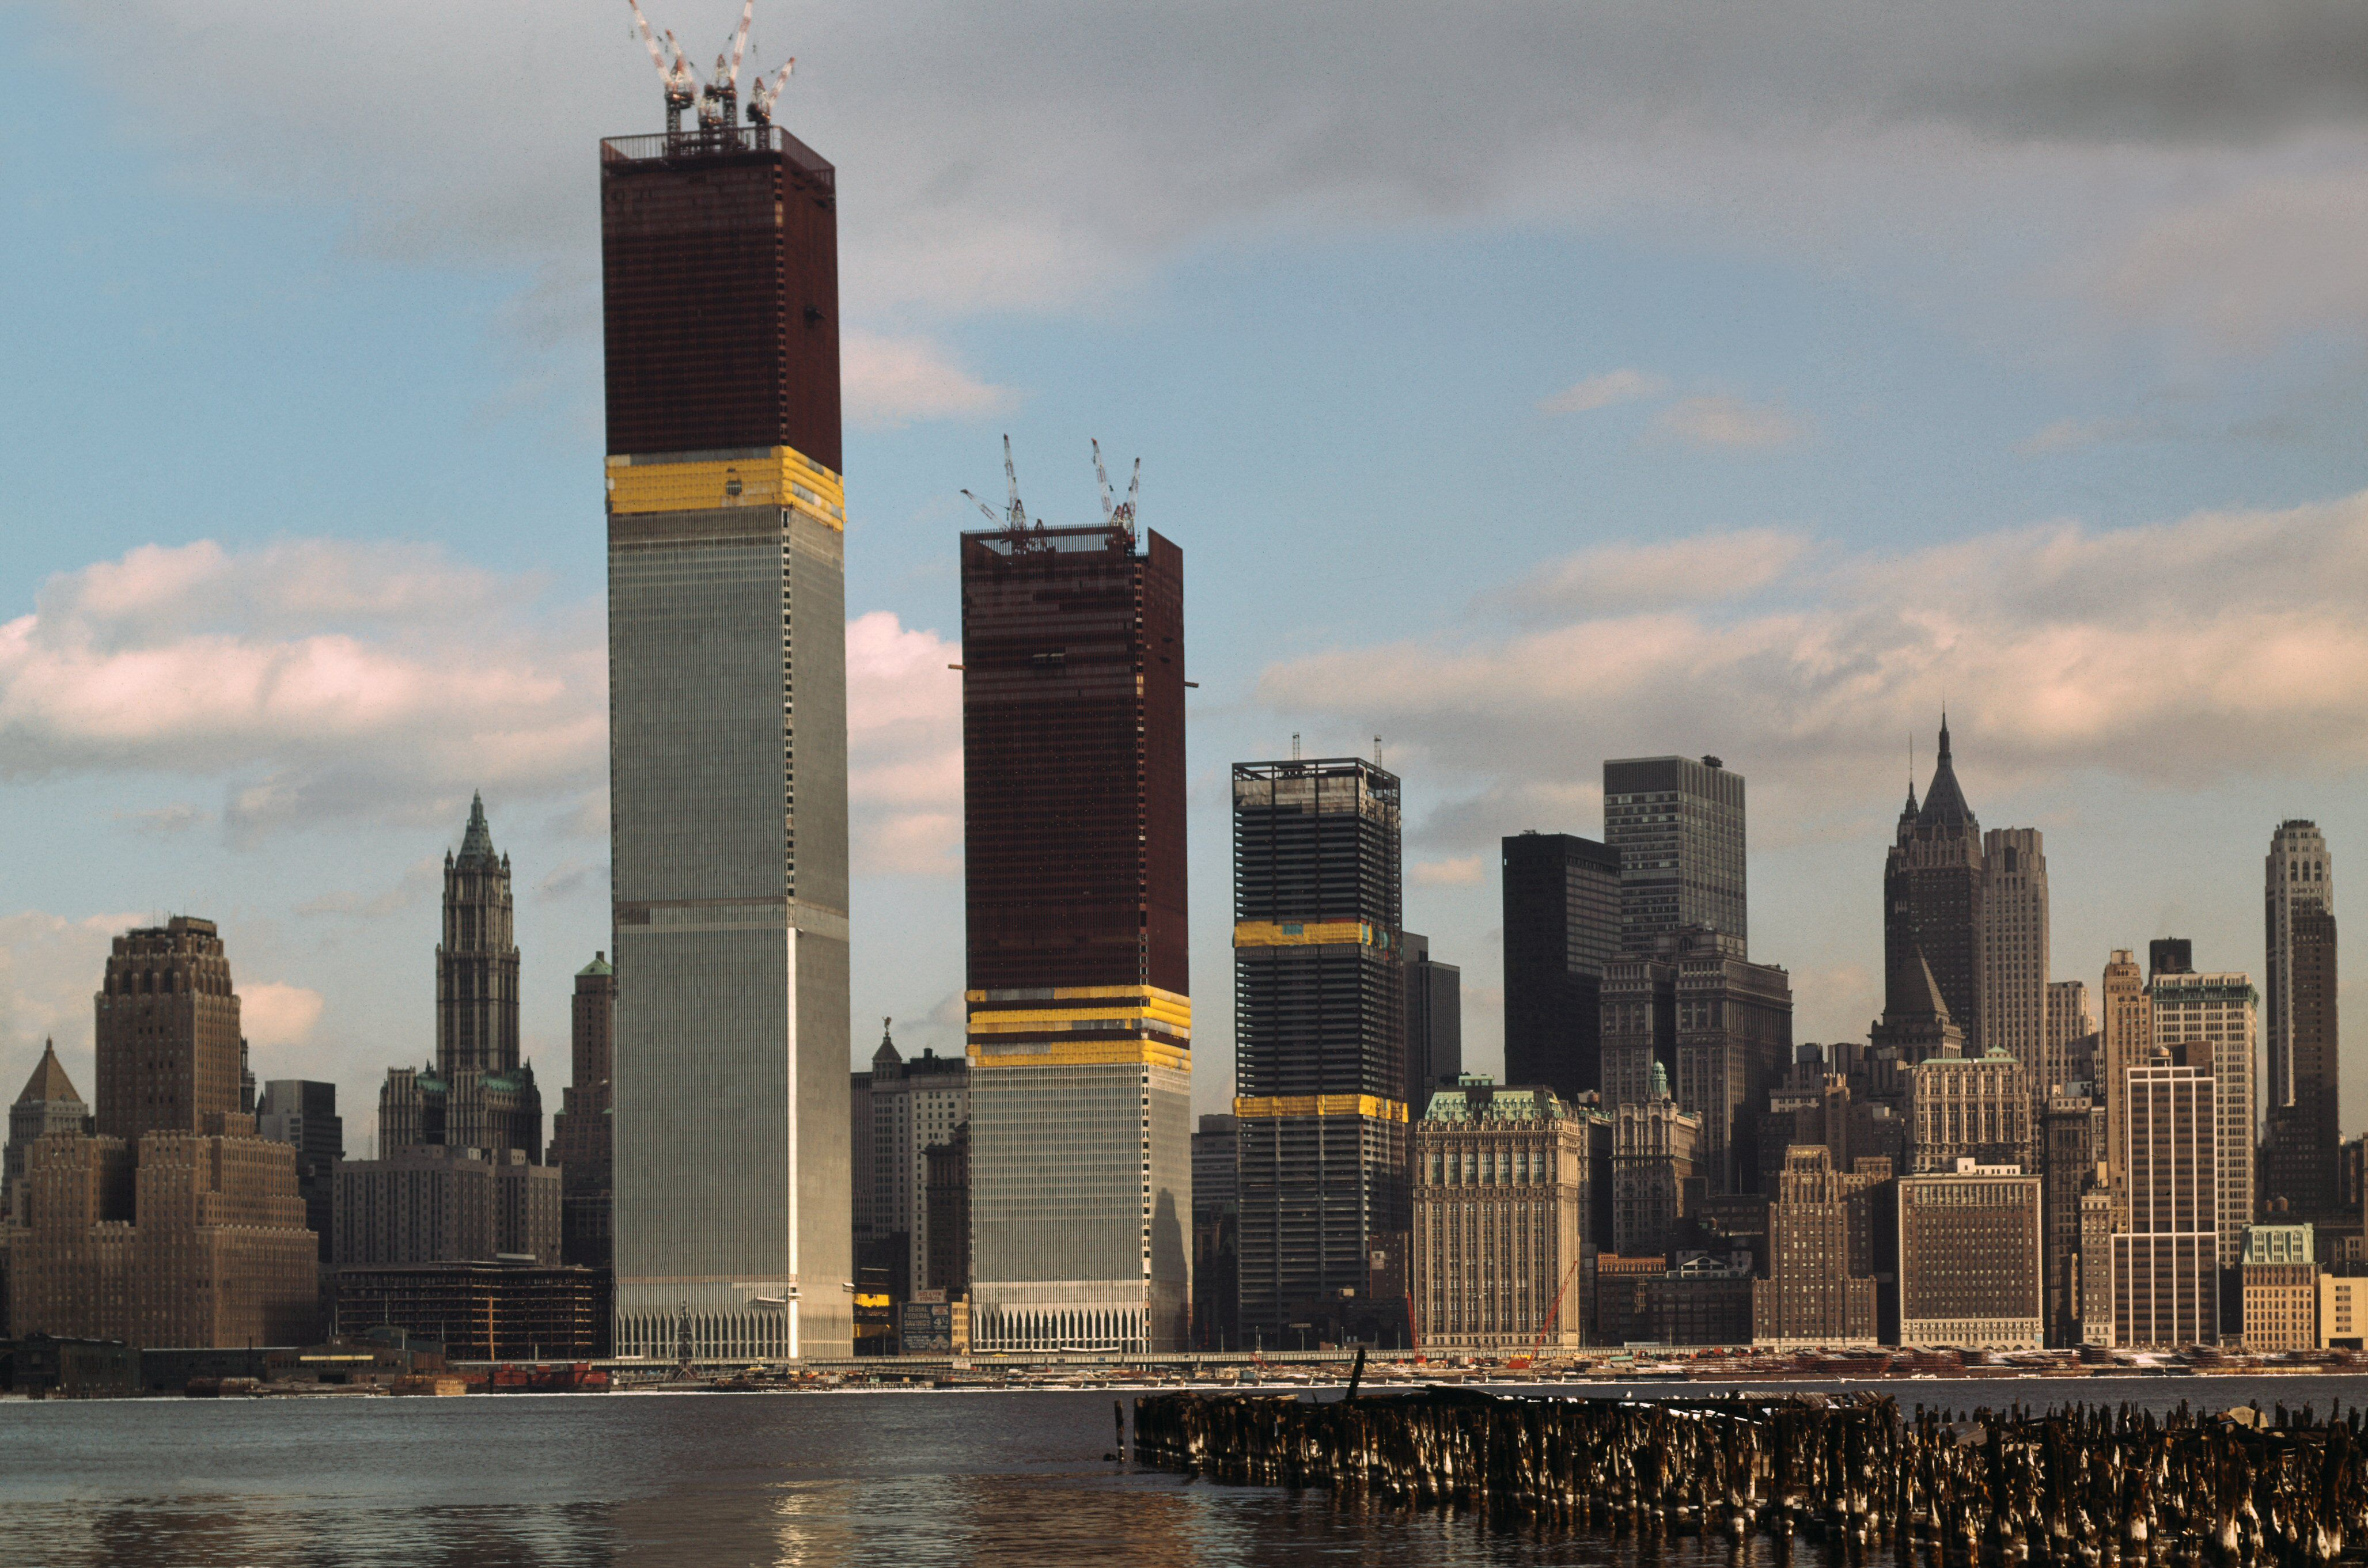 Views of the World Trade Center (both of its twin towers still under construction) and Manhattan skyline views taken from New Jersey shore